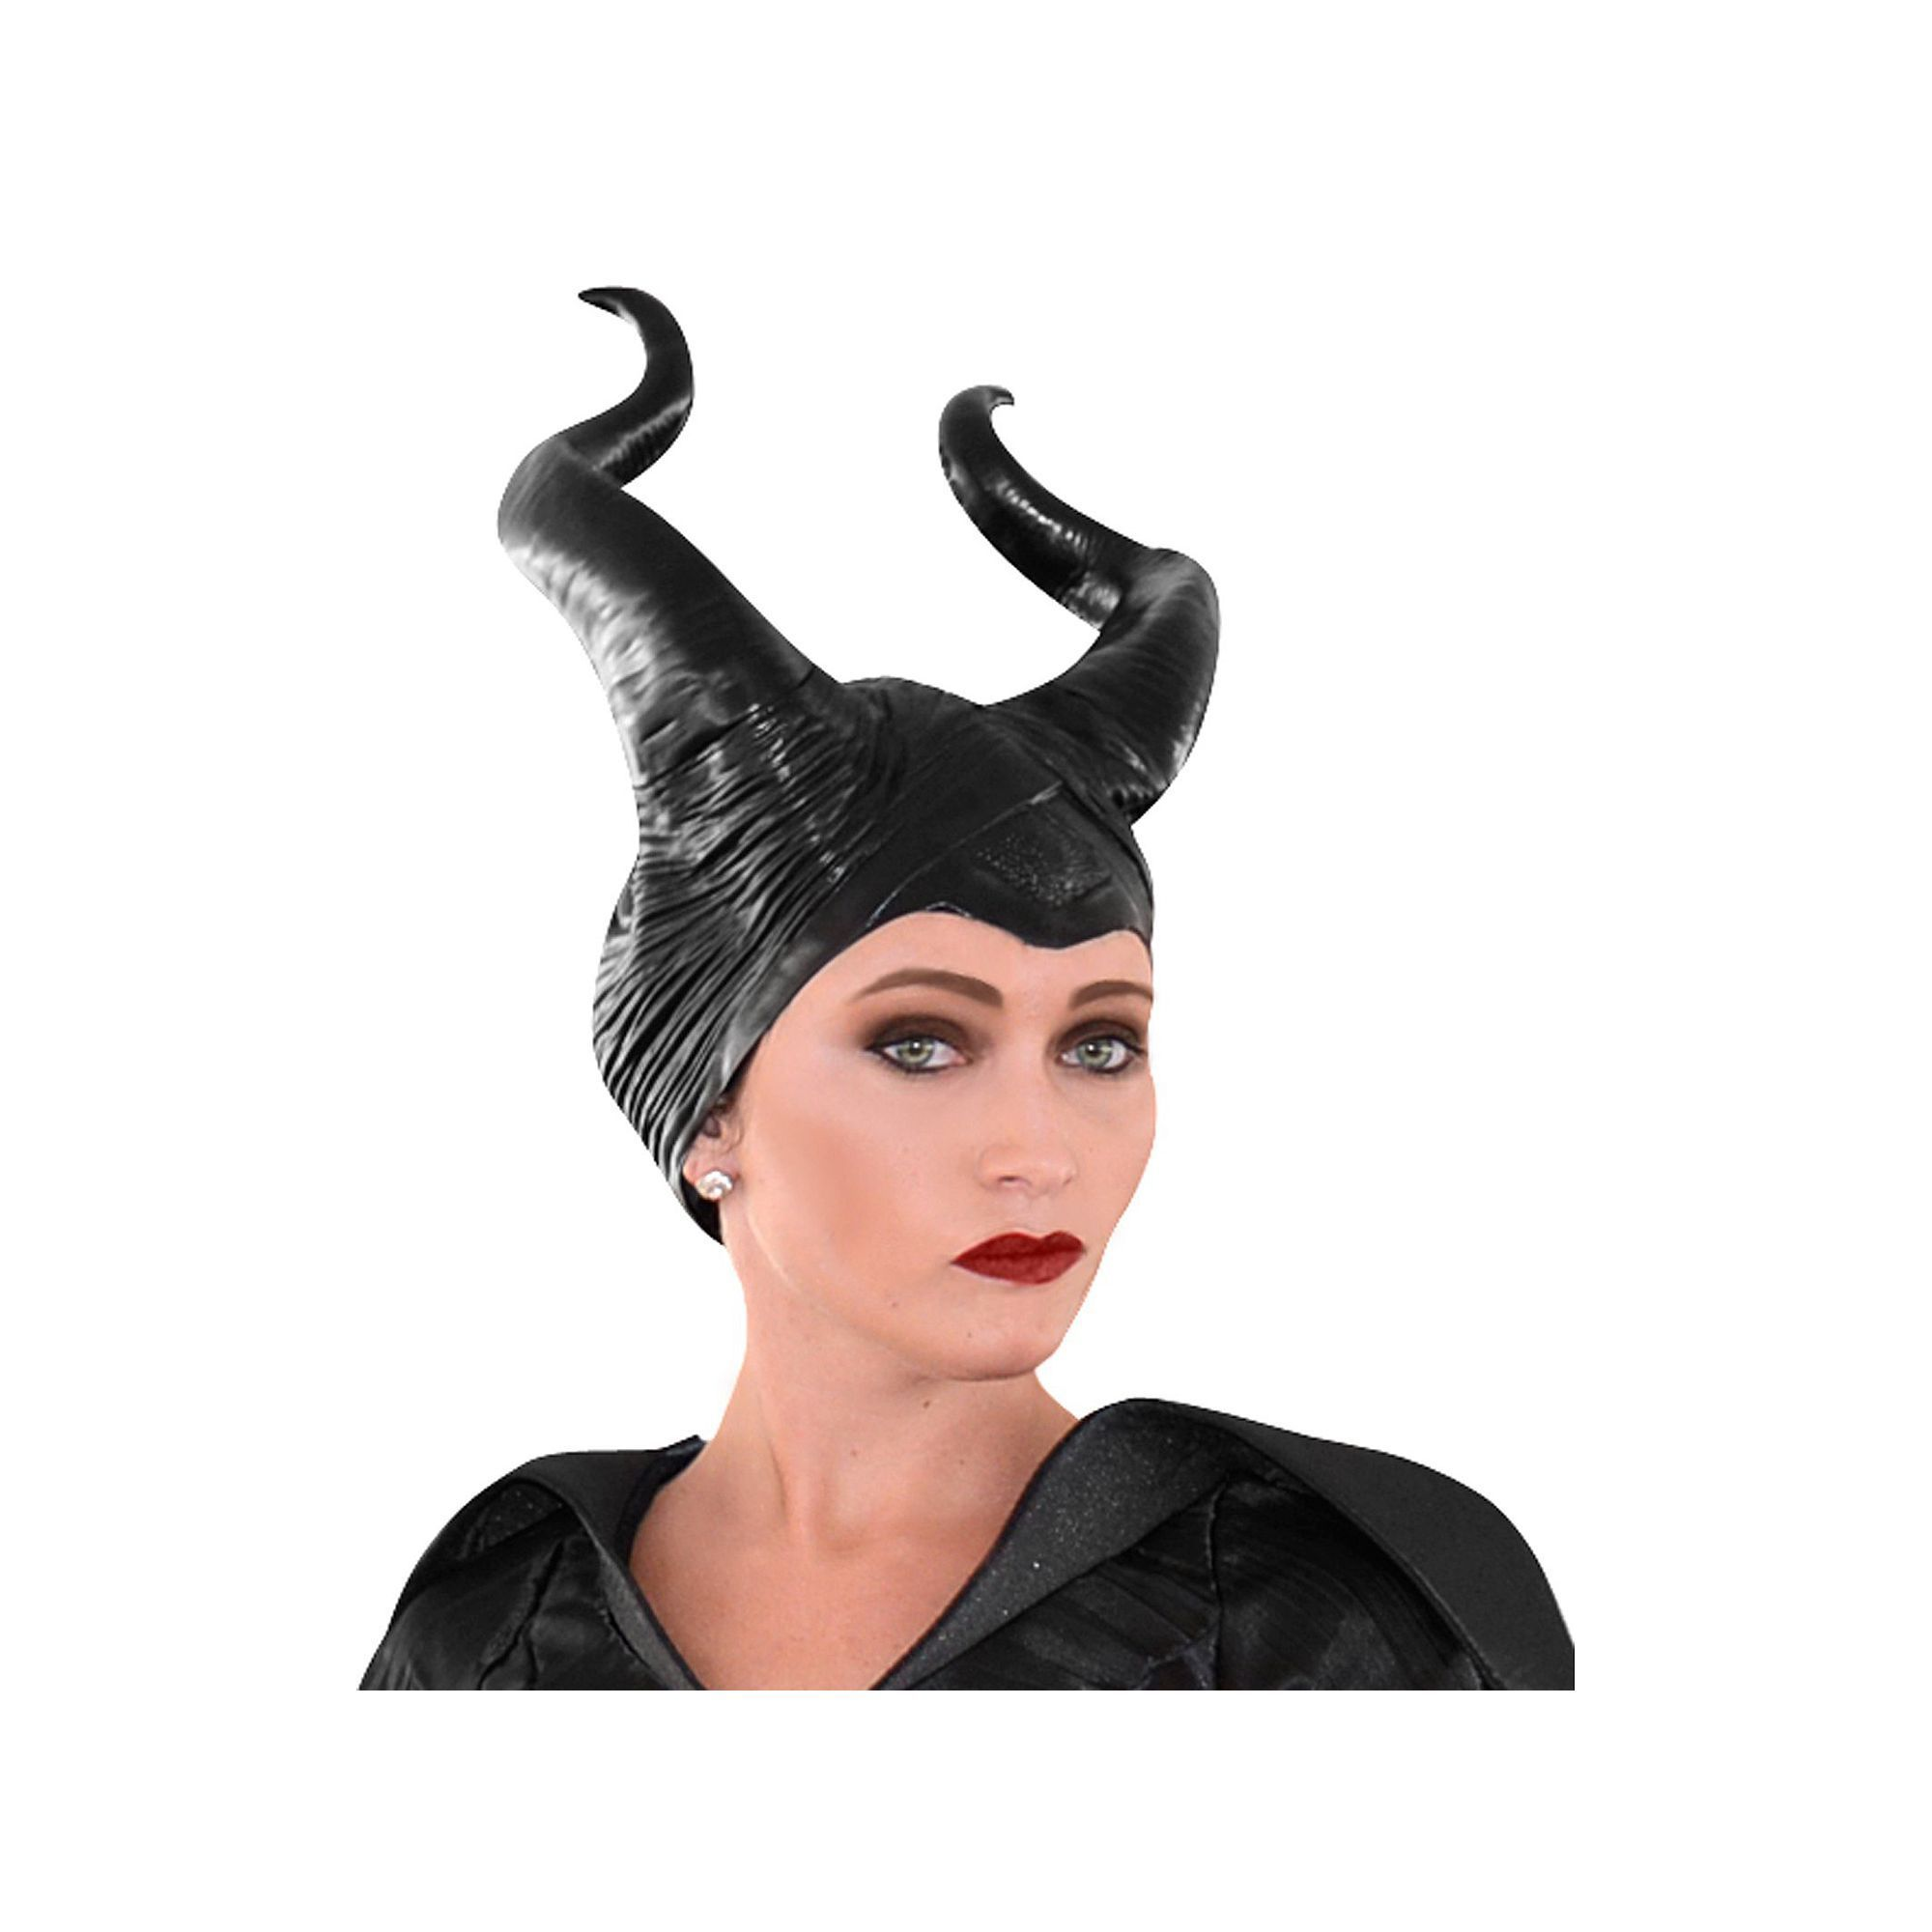 Halloween Party Disguise Womens Disney Maleficent Movie Deluxe Adult Horns Black